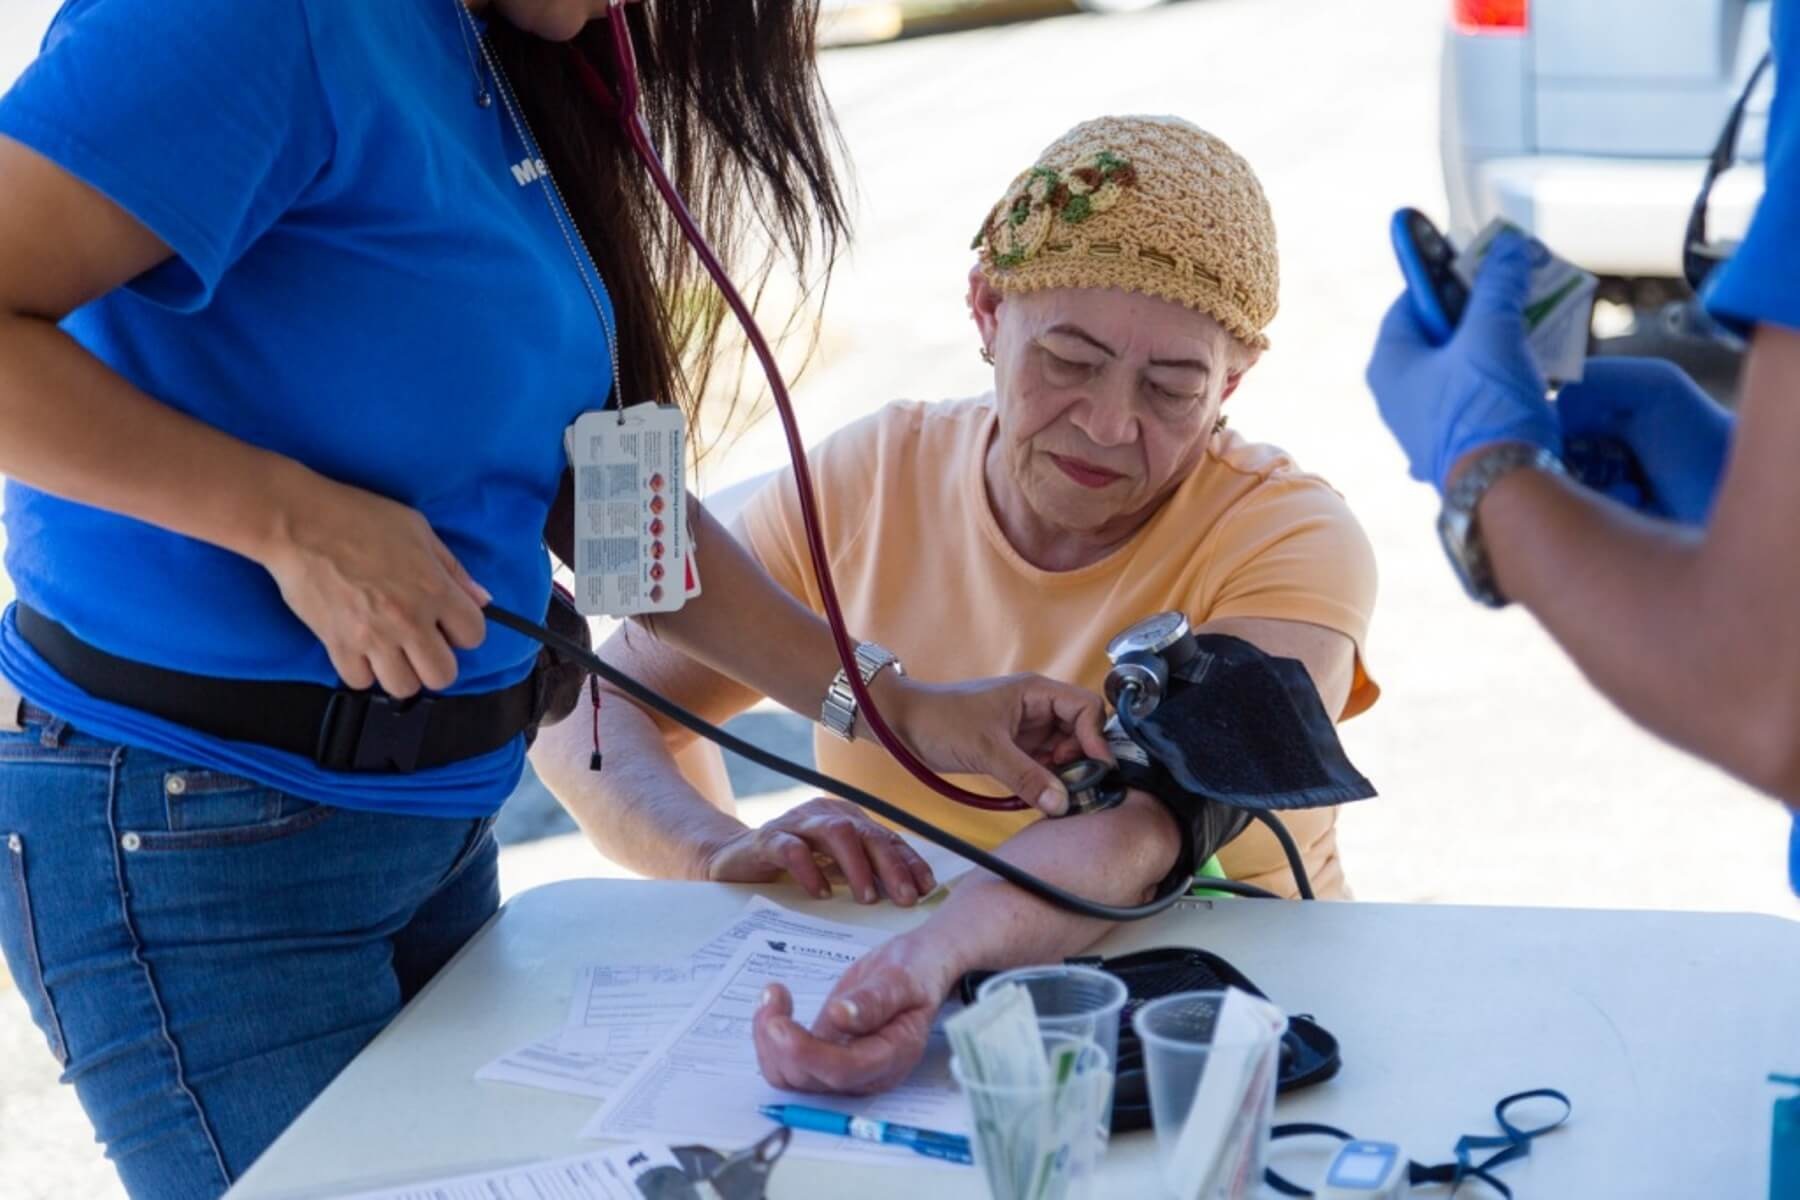 Relief worker takes blood pressure in an outdoor clinic in Puerto Rico